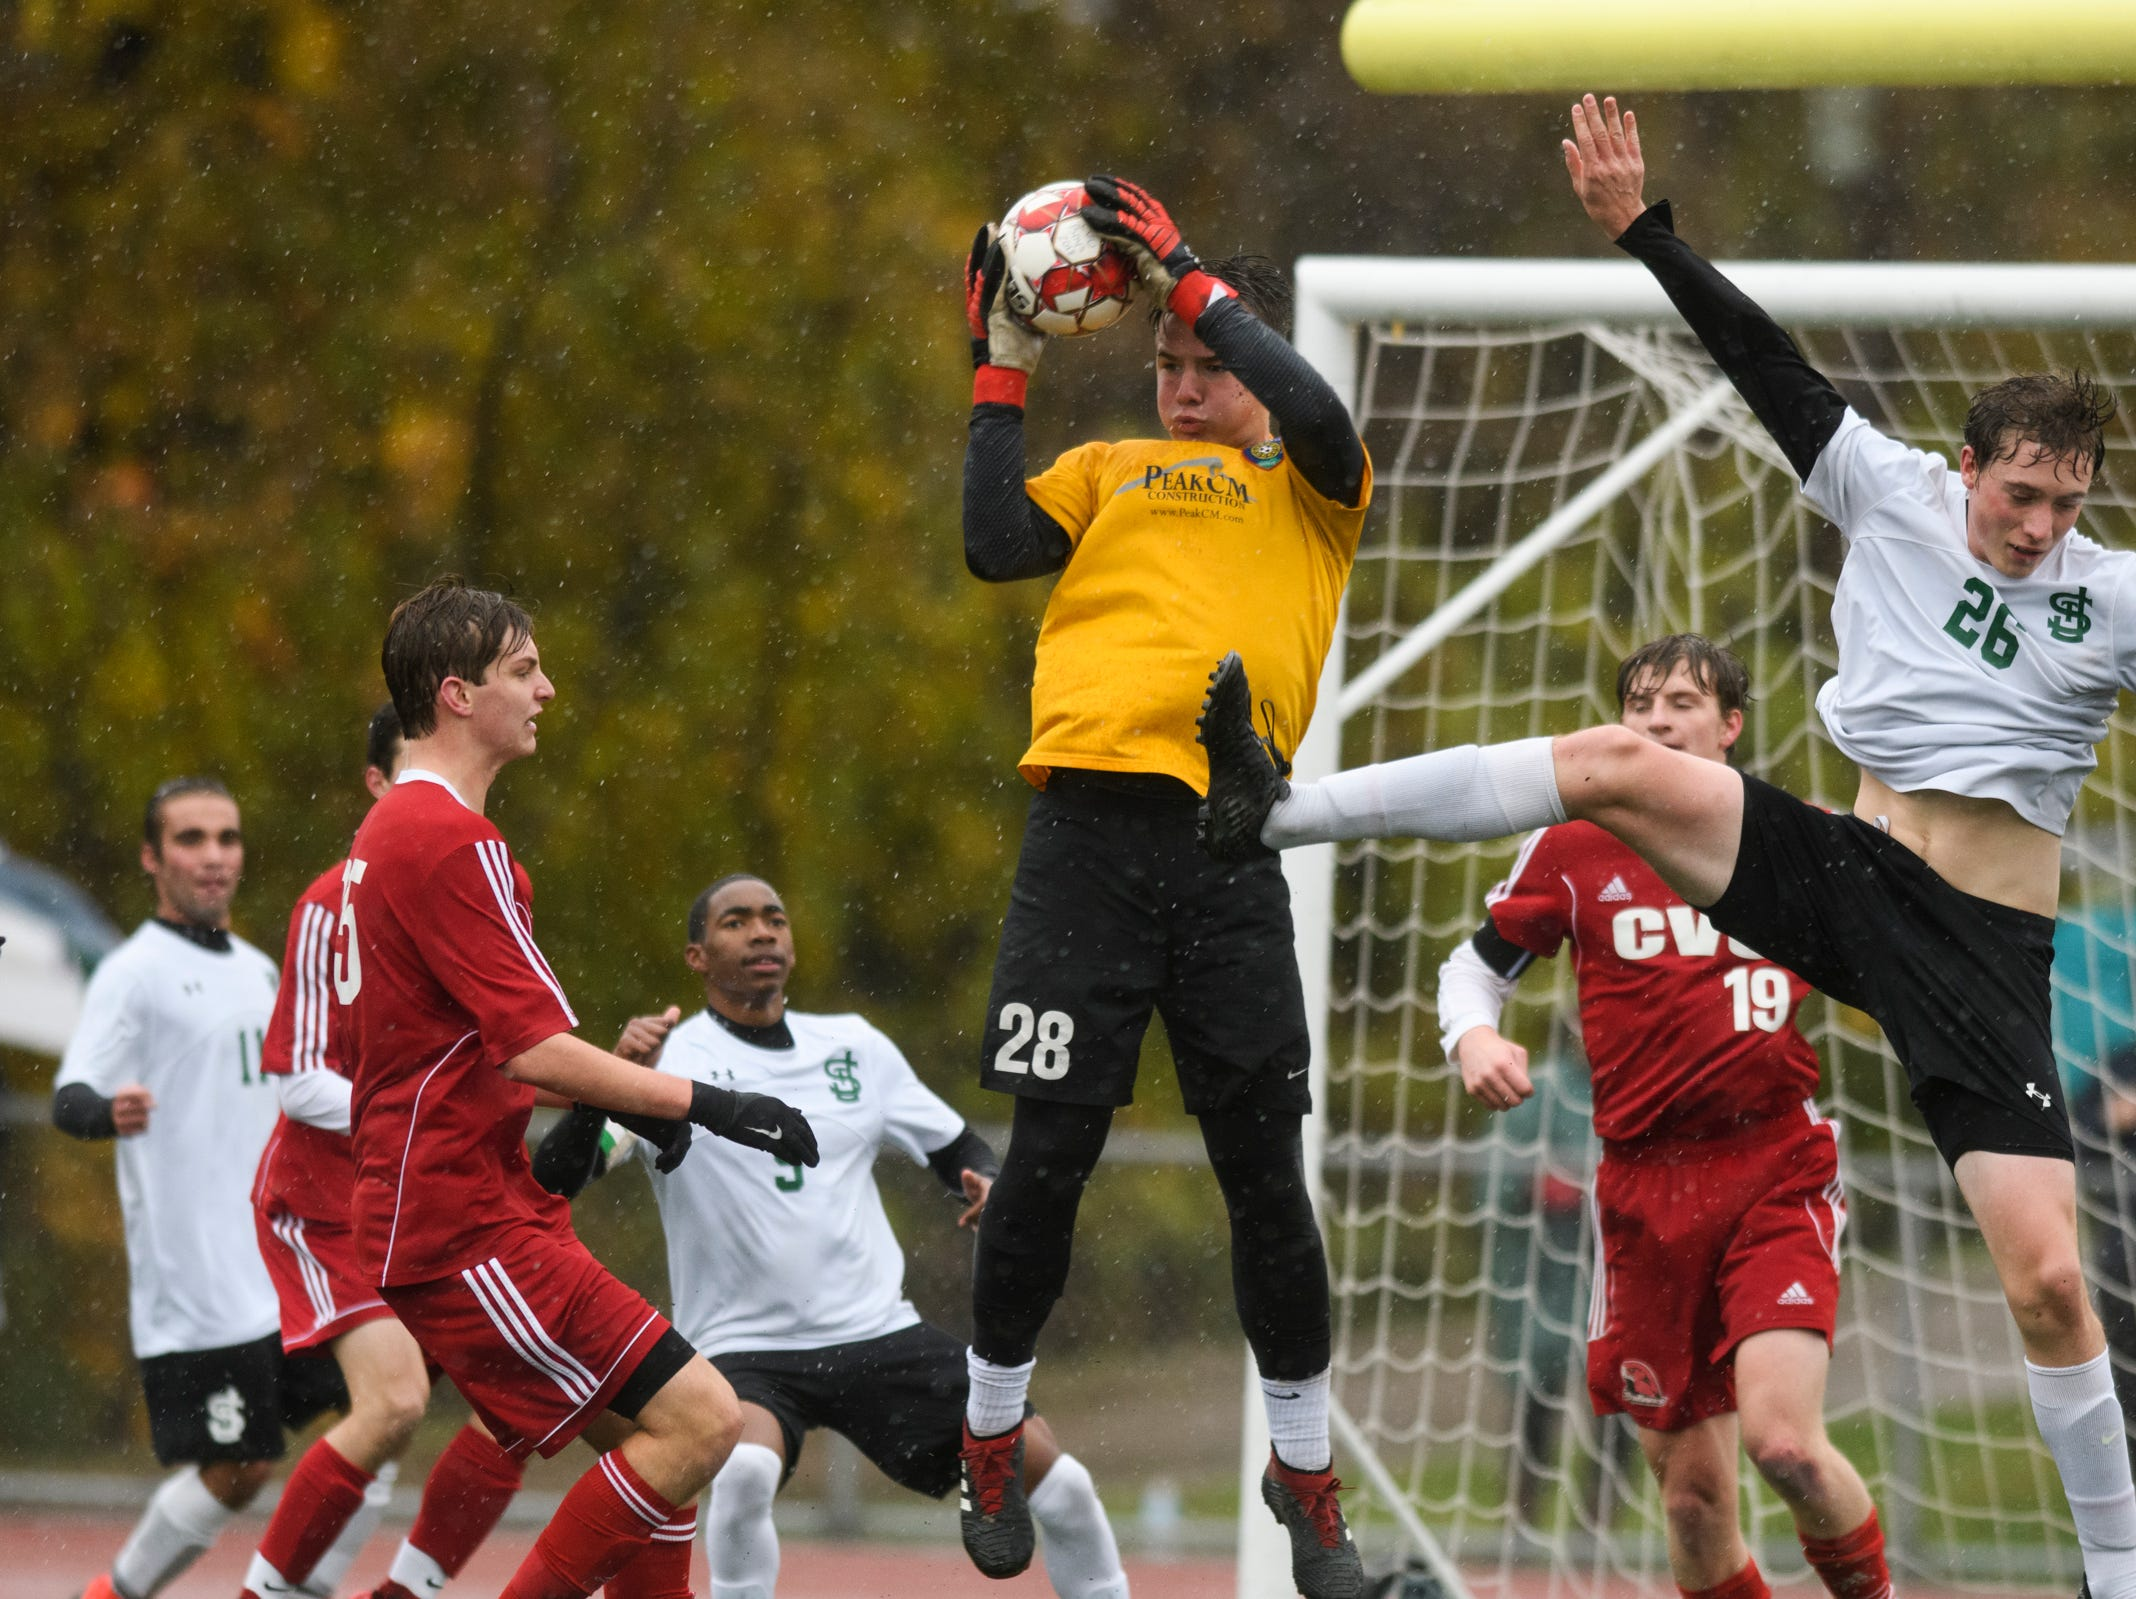 CVU goalie Aidan Johnson (28) leaps to make a save during the Division I boys soccer championship game between the St. Johnsbury Hilltoppers and the Champlain Valley Union Redhawks at Buck Hard Field on Saturday morning November 3, 2018 in Burlington.